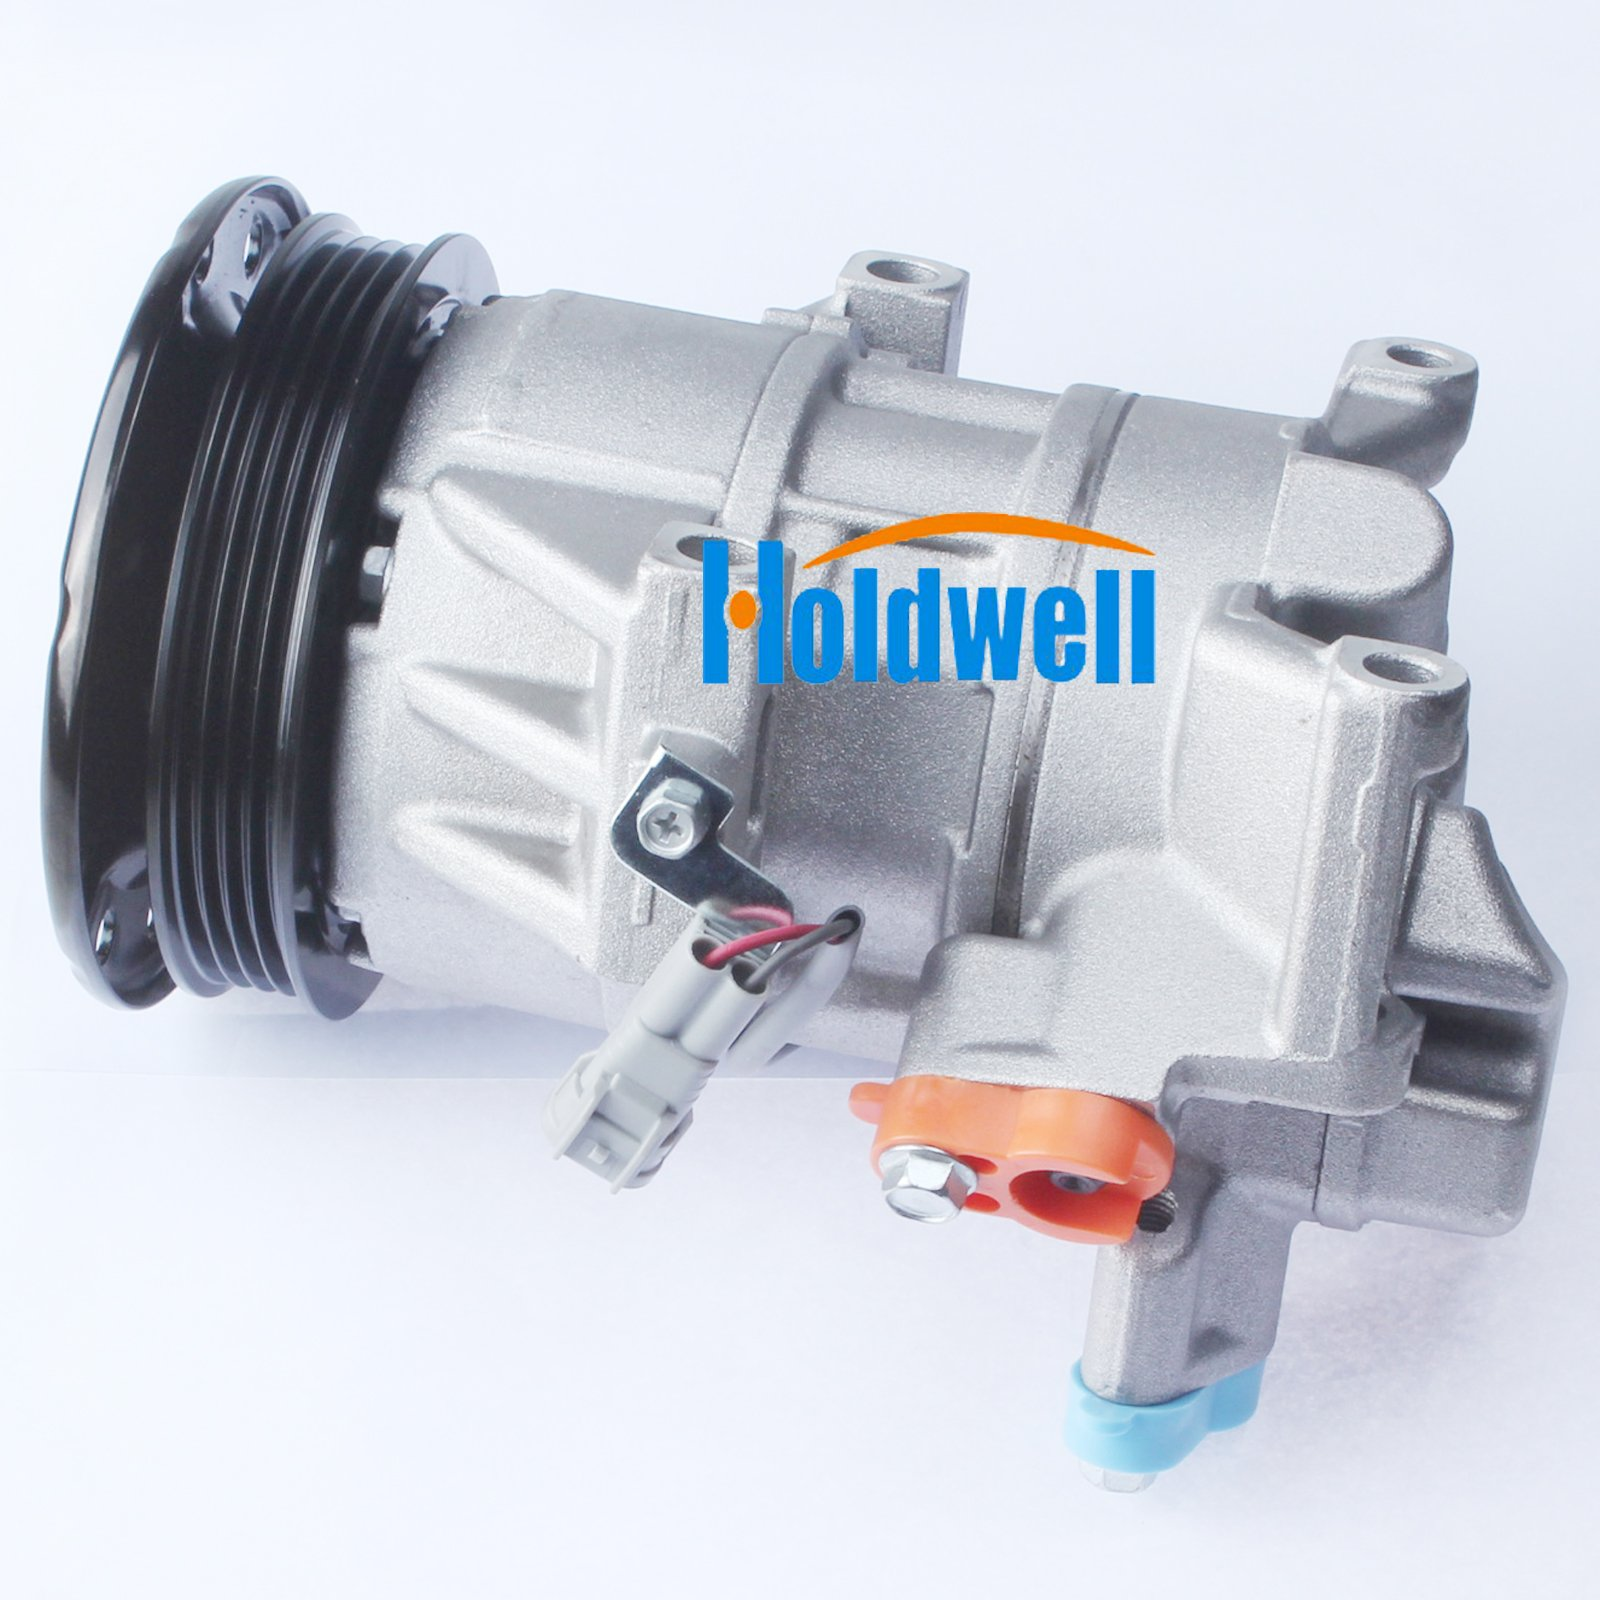 Holdwell 4PK AC Compressor 88310-52550 88310-52492 for Toyota yaris 1.3 Denso 5SER09C by Holdwell (Image #4)